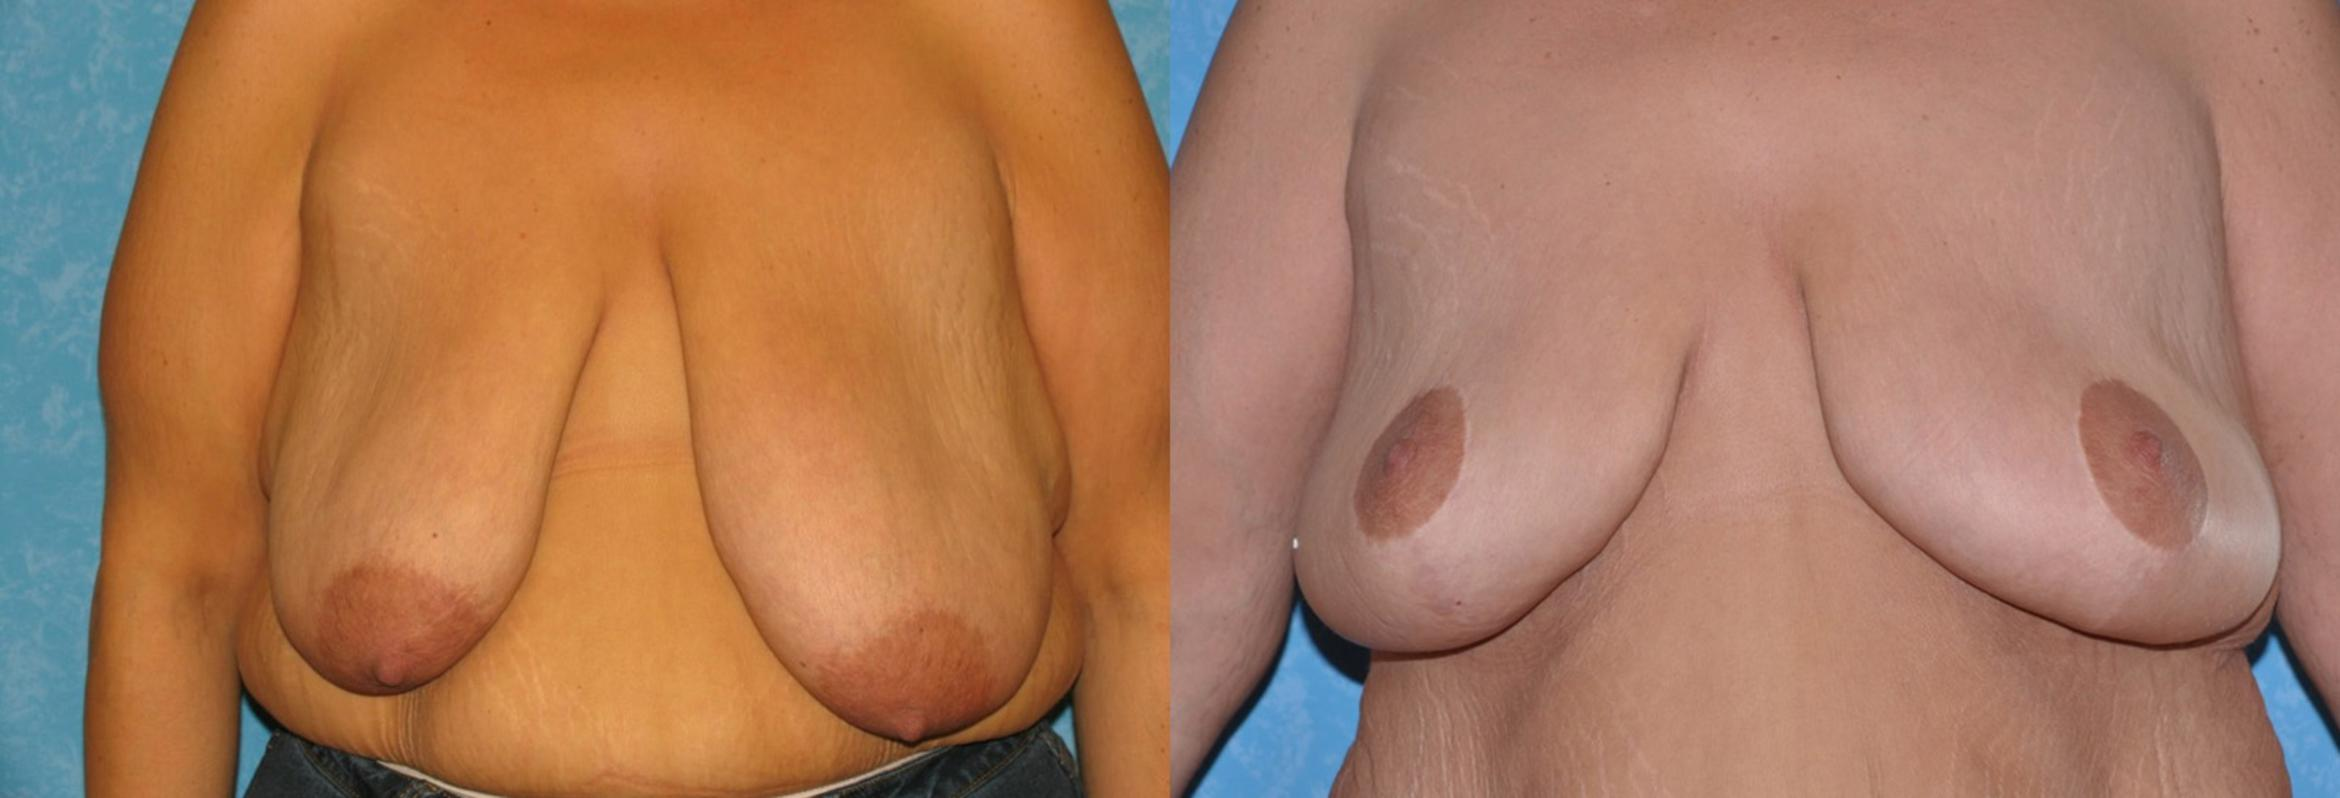 Breast Reduction Before & After Photo | Toledo, Ohio | Dr. Craig Colville